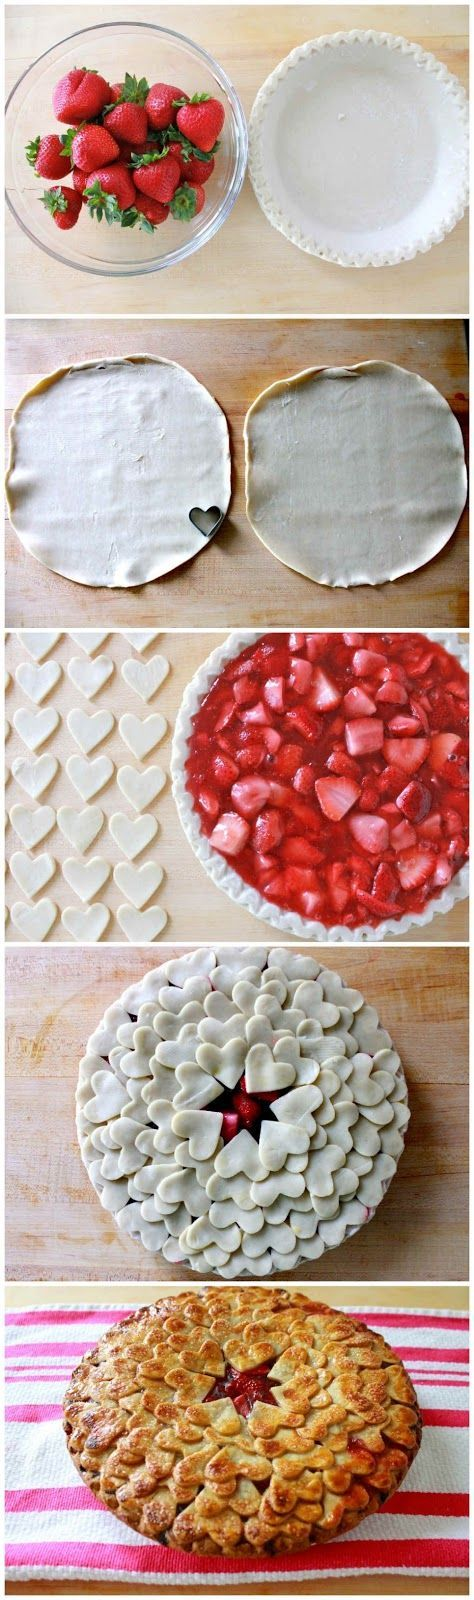 Strawberry Heart Pie <3 RHS